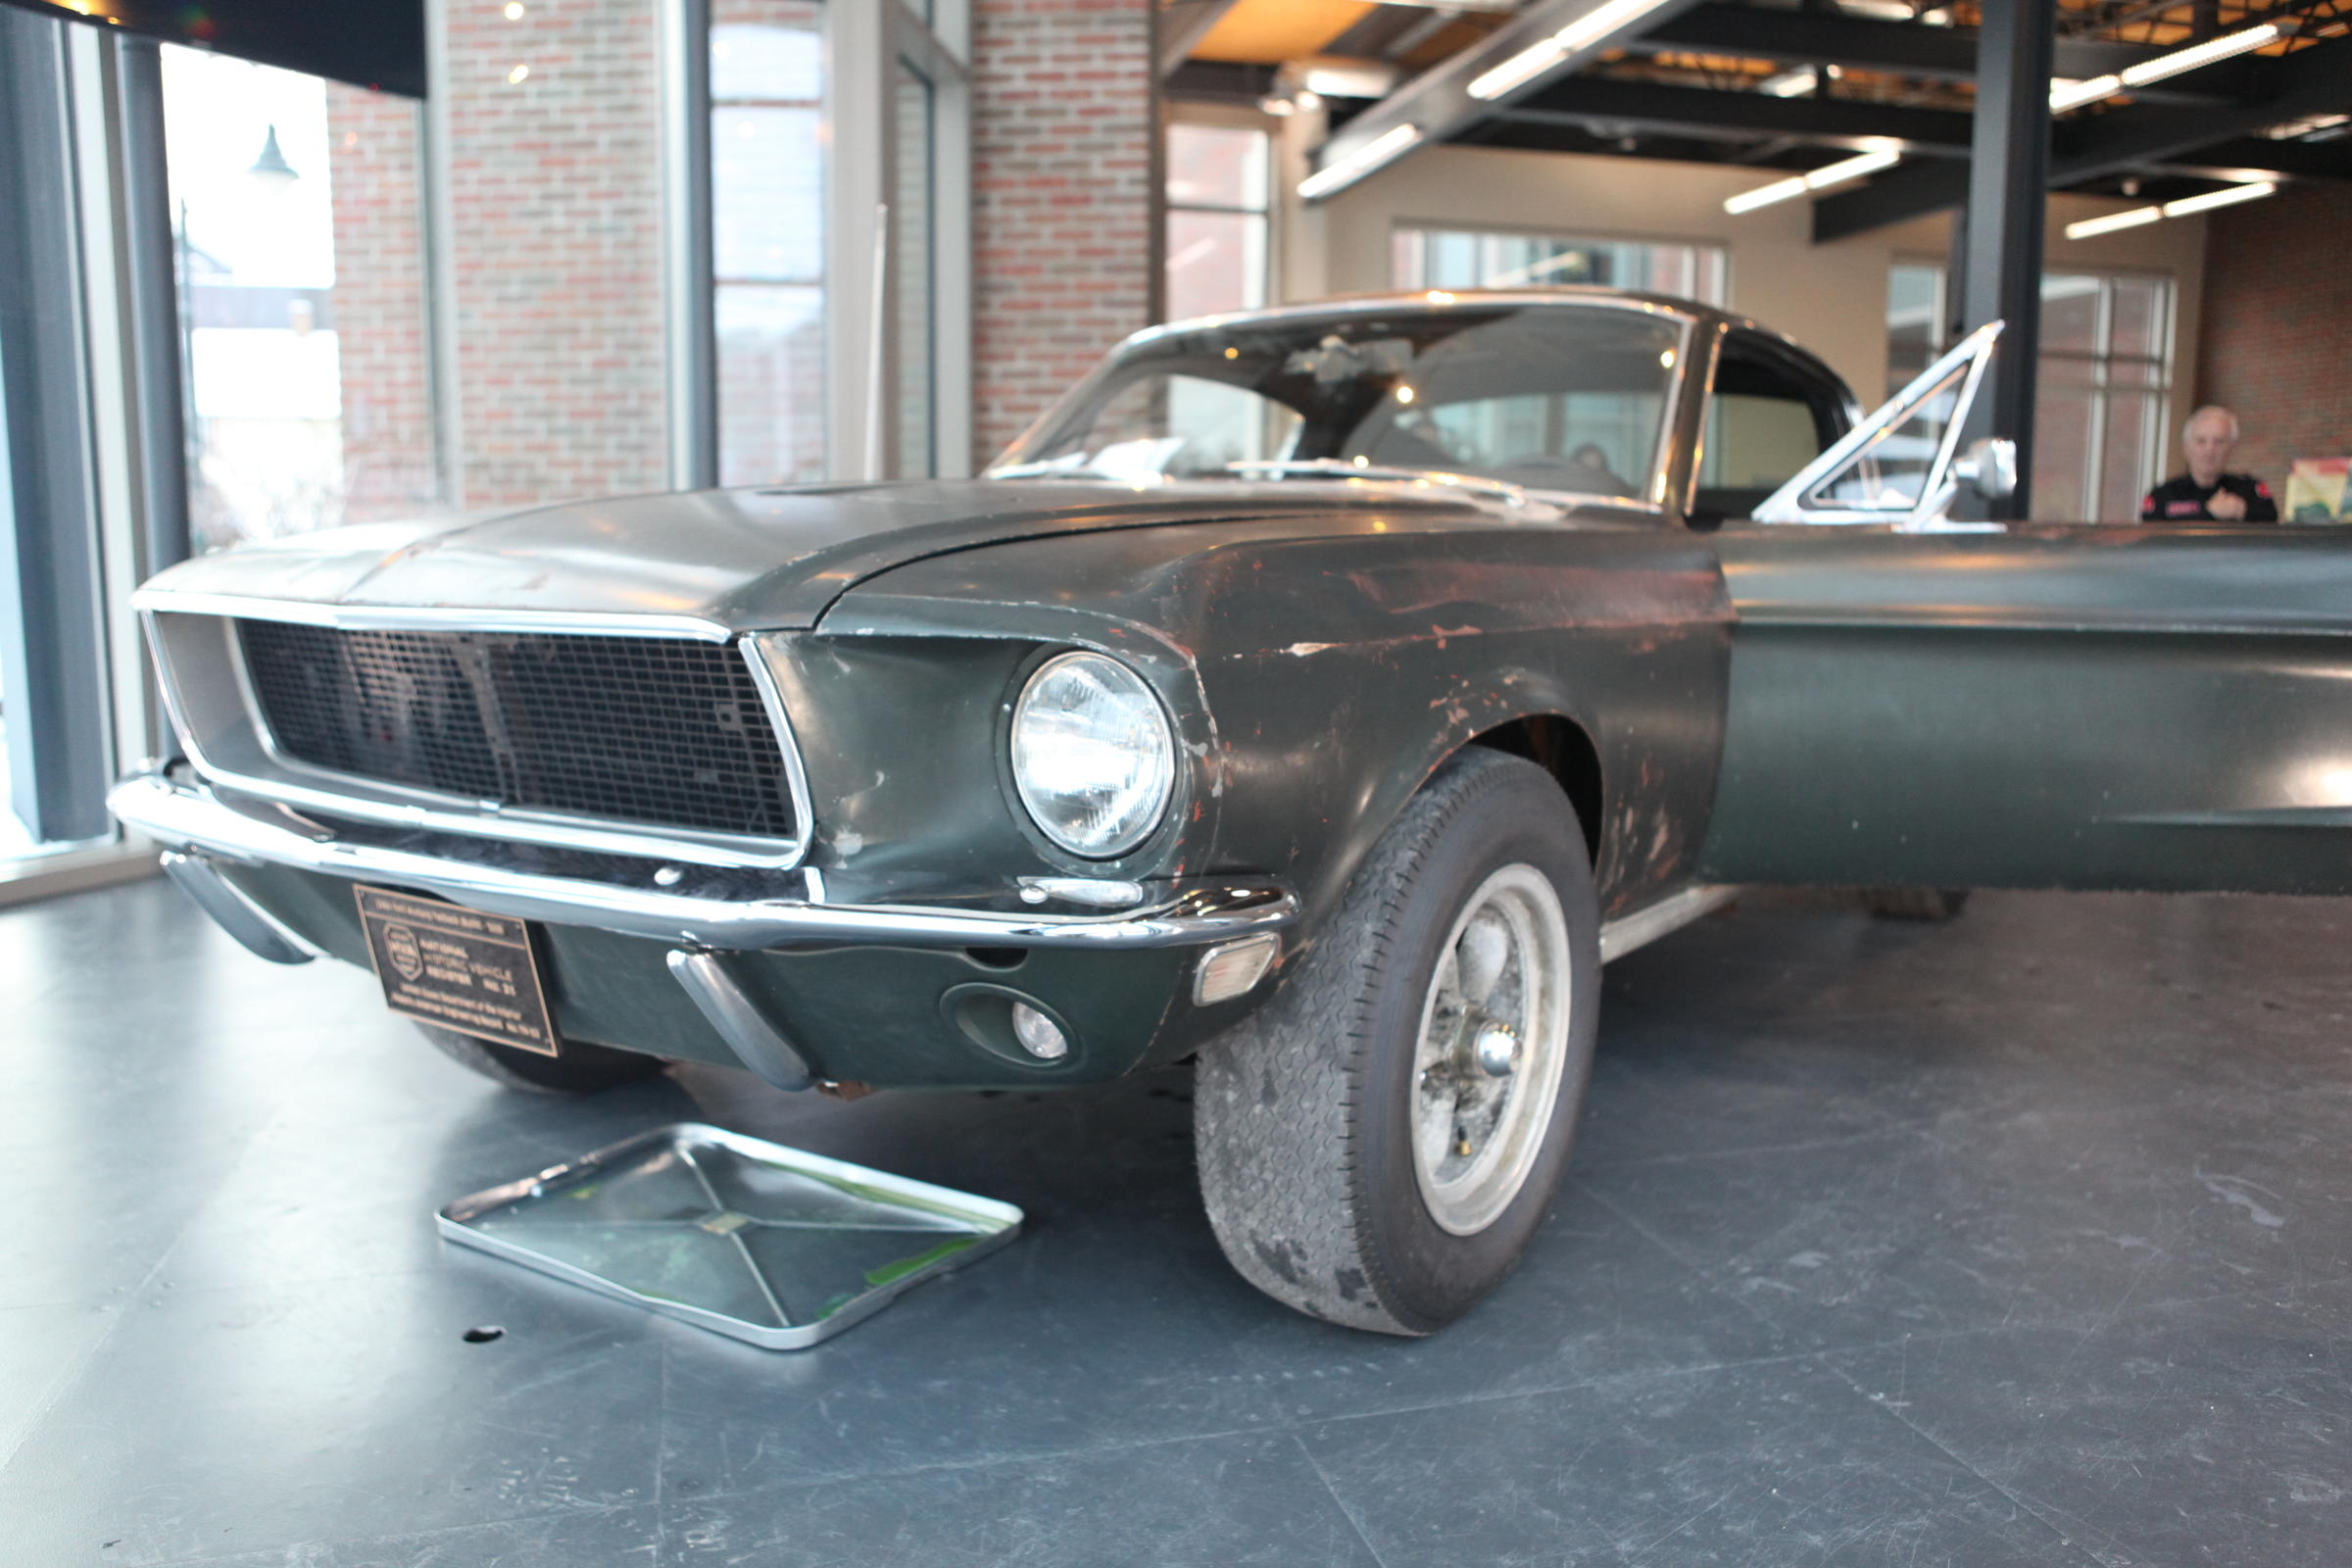 The 1968 mustang fastback used in the film bullitt is on display at the hagerty insurance building in traverse city